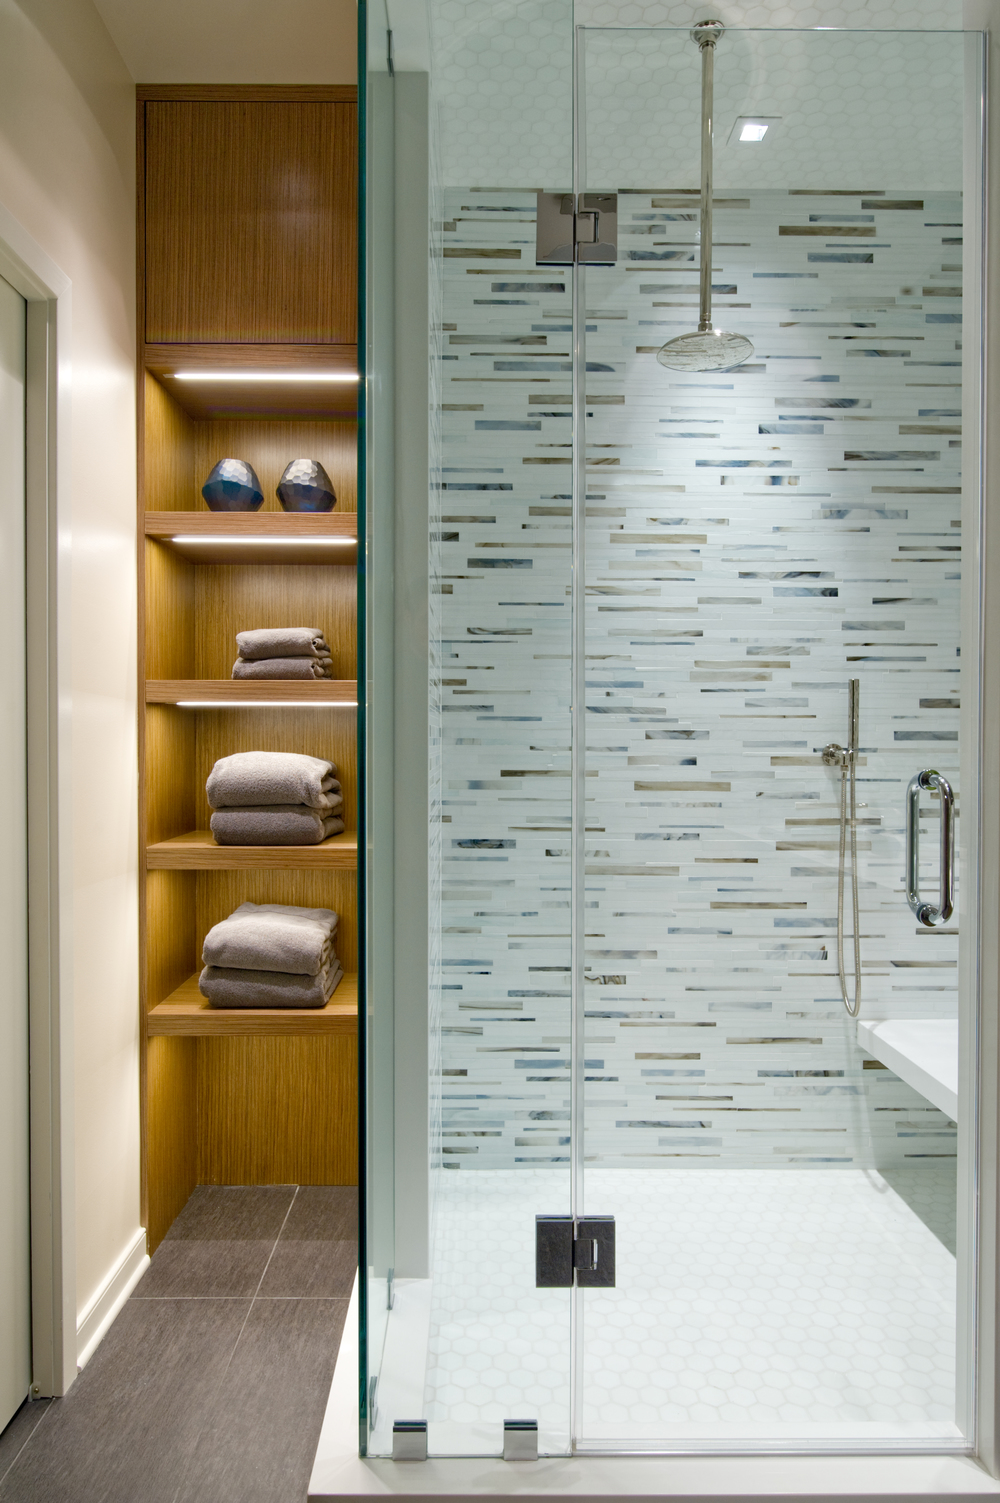 Penny+Lane25+-+Shower+with+Millwork (1).jpg